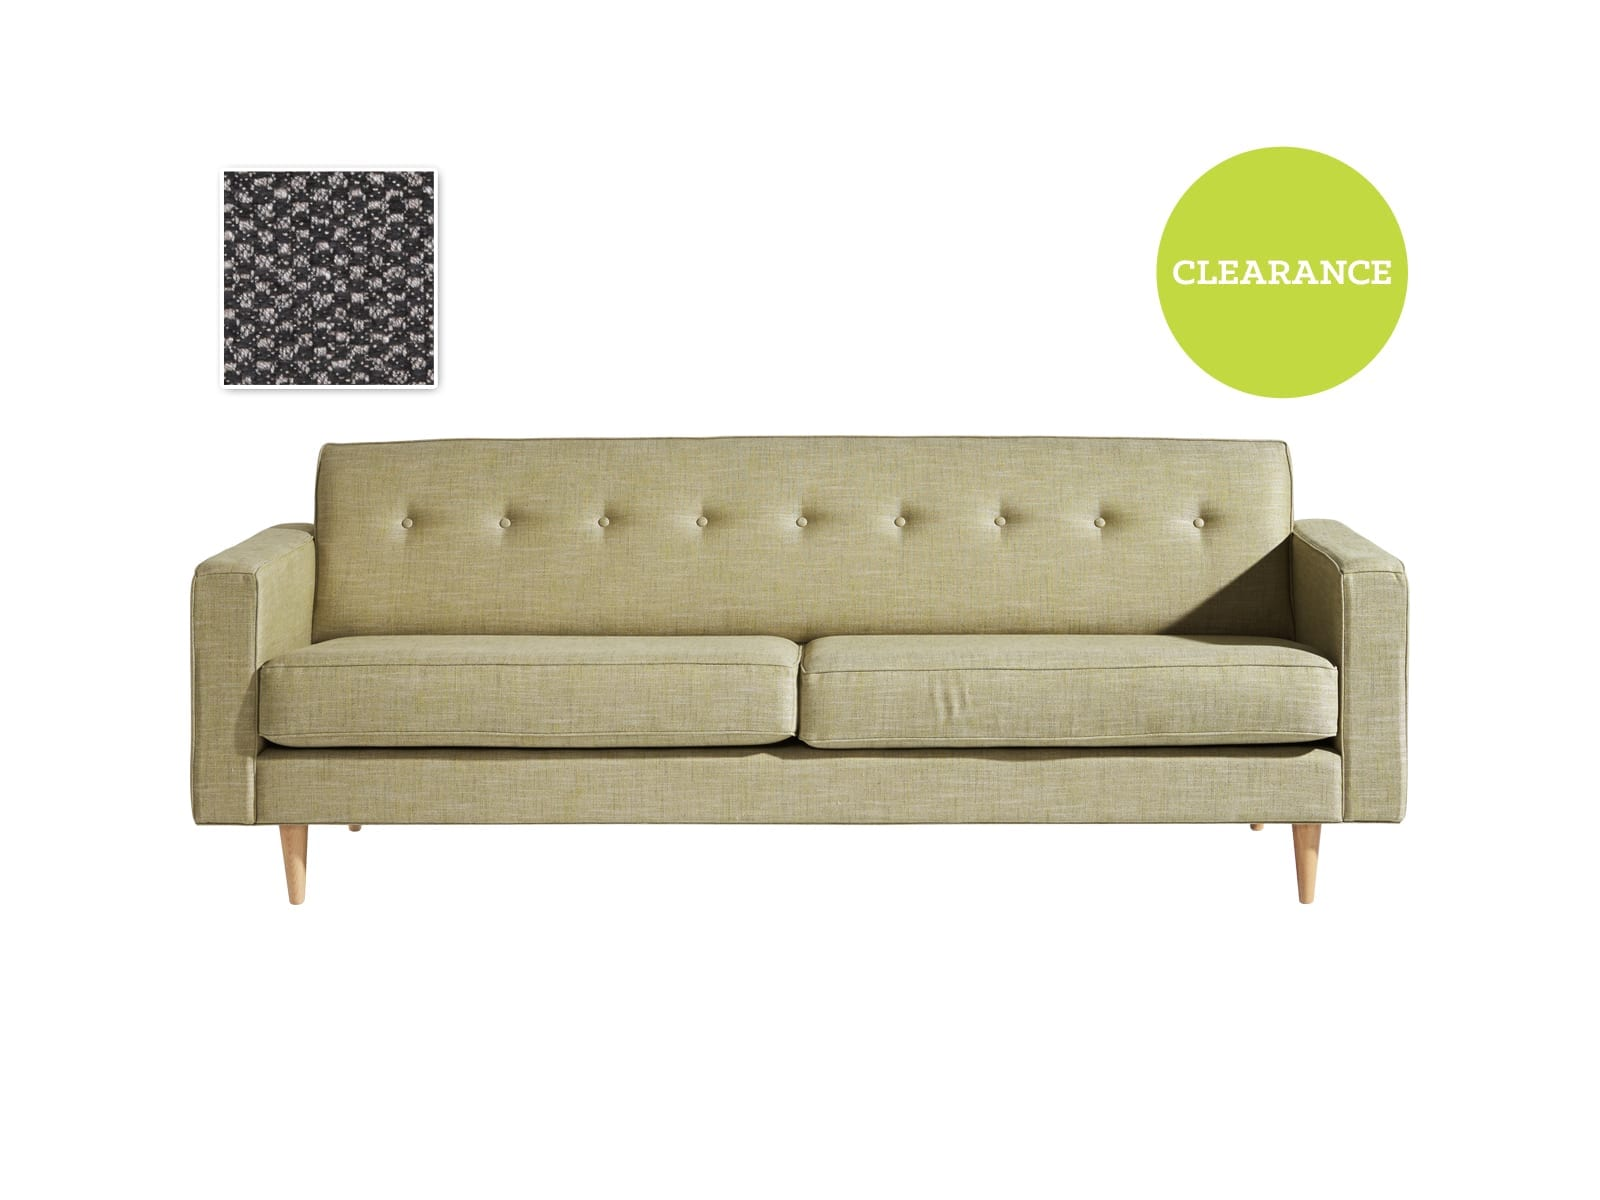 Finewood Chester 3 Seater Sofa in Textilia Mosaic Carbon